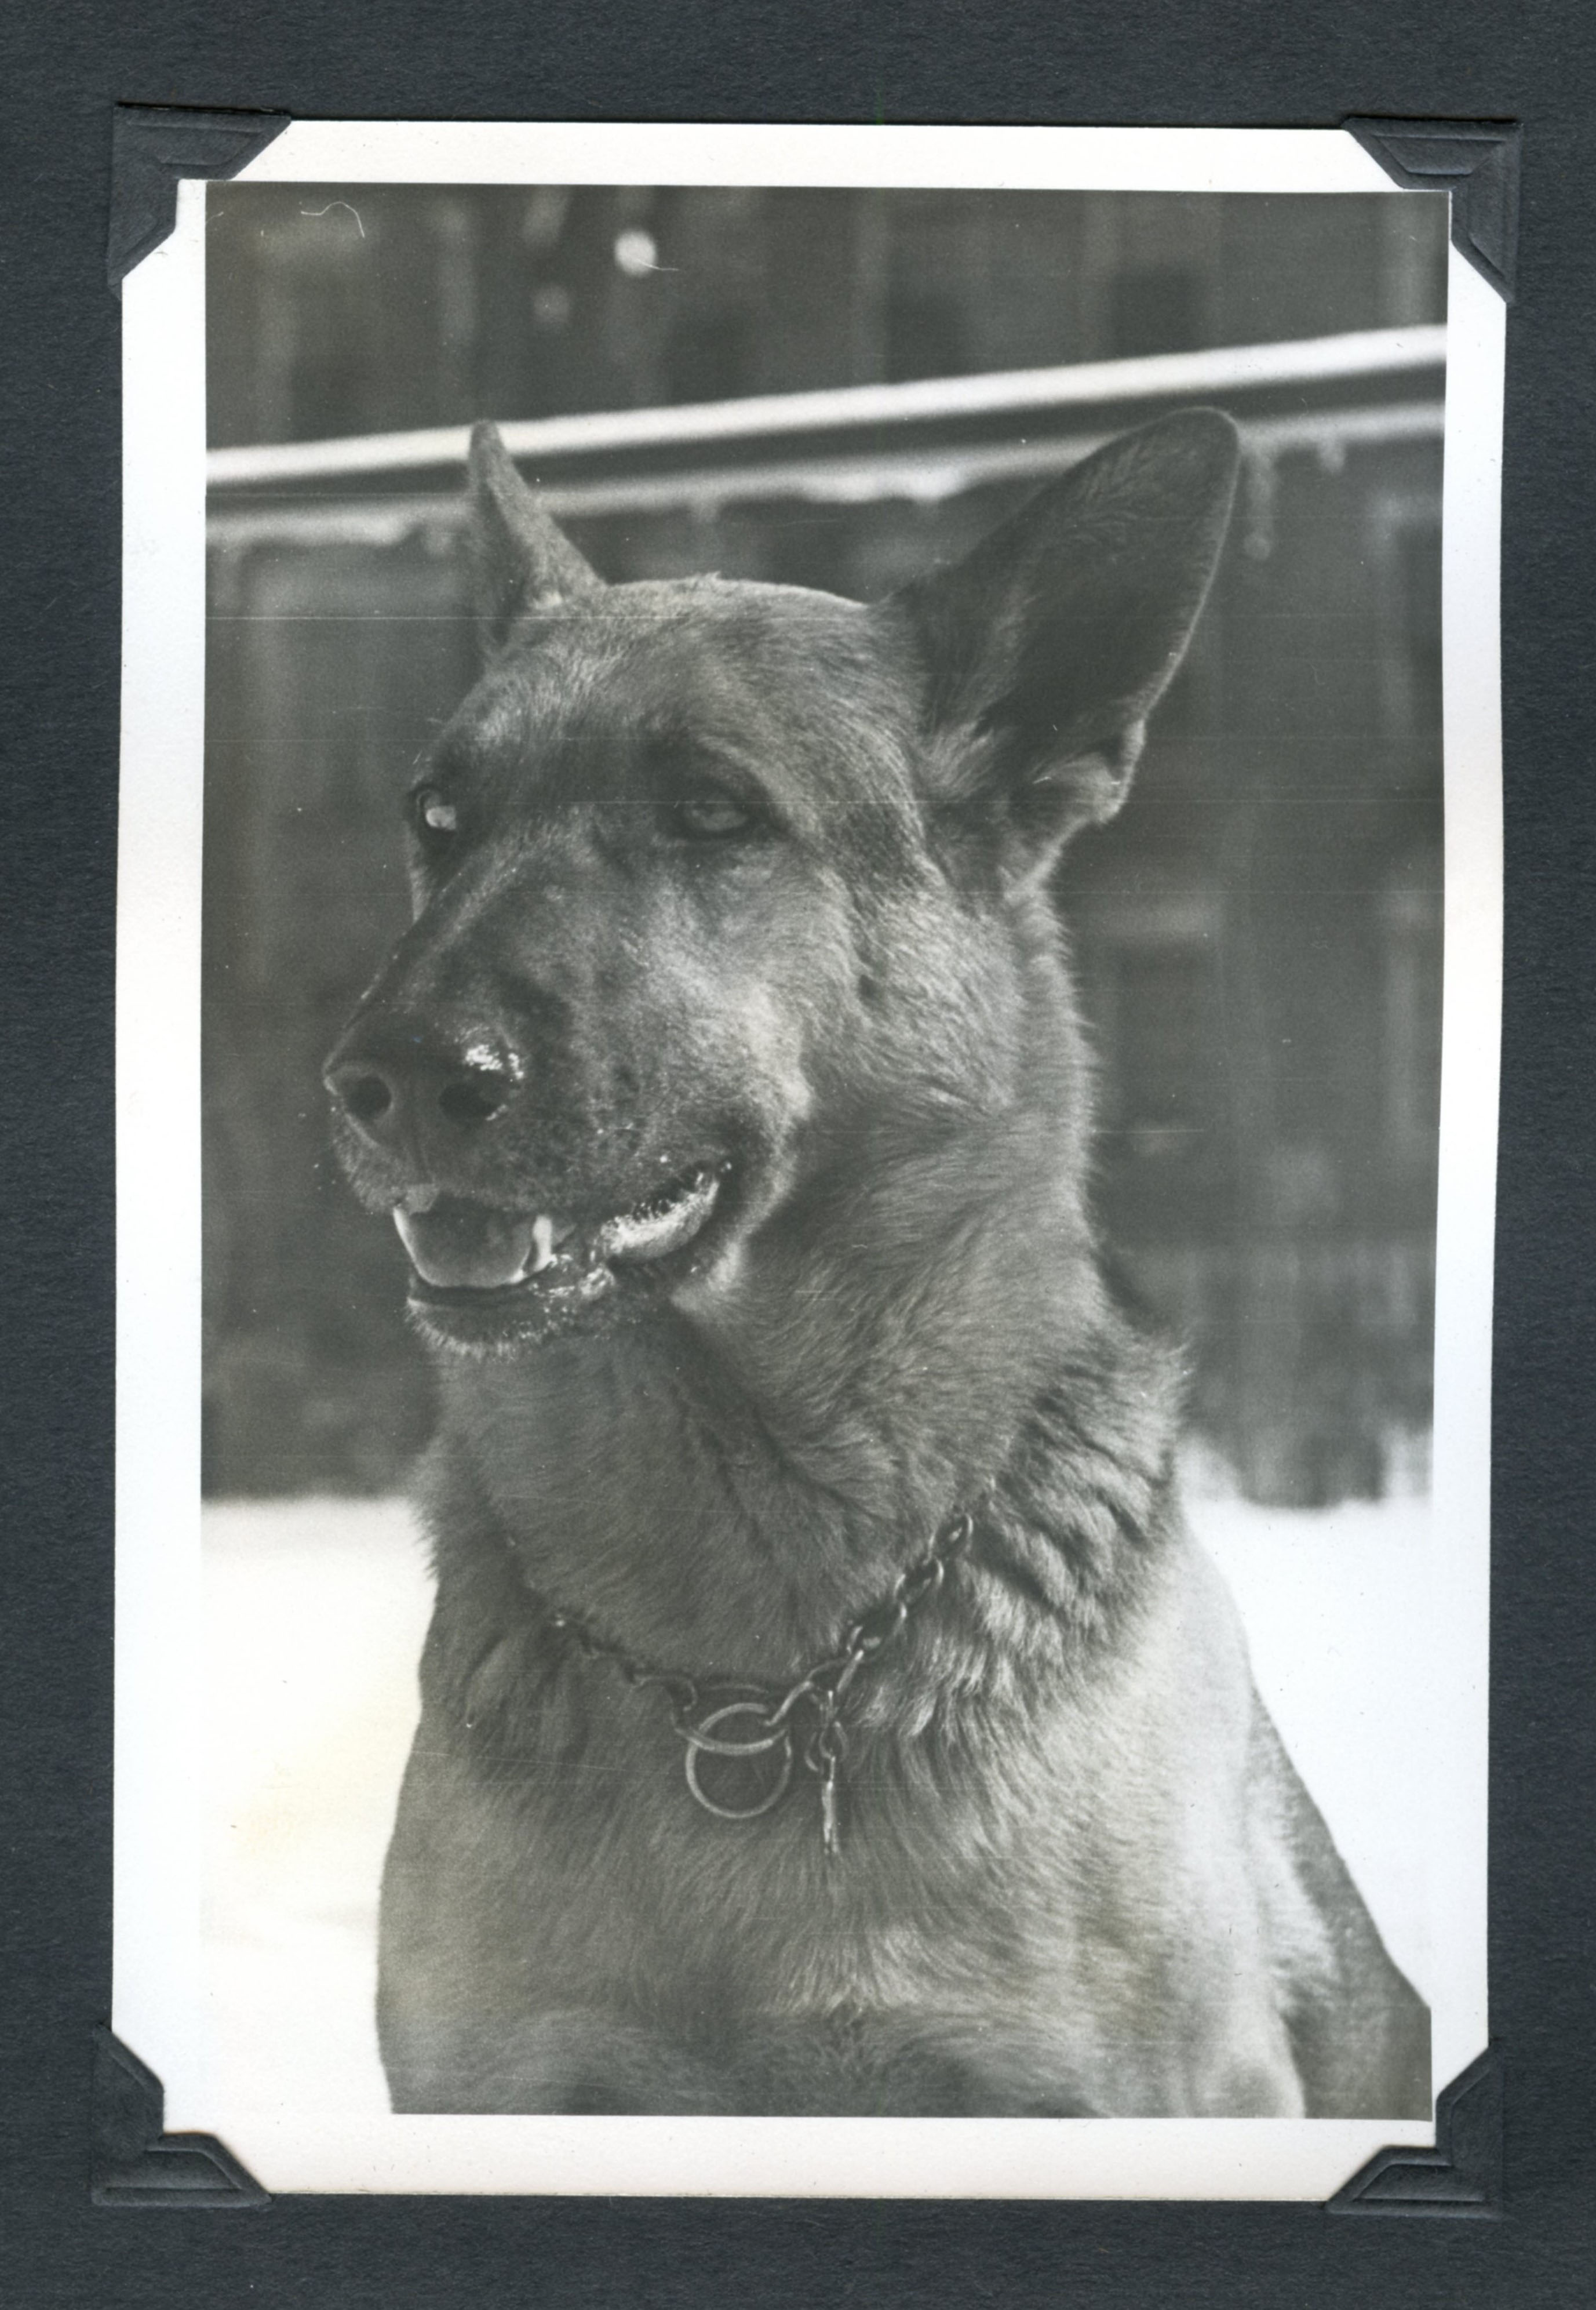 Rex, former guard dog at the Fogg Museum, who served from 1937 until at least 1941. Photo taken between 1930s and 1940s. Courtesy Harvard Art MuseumsArchives.